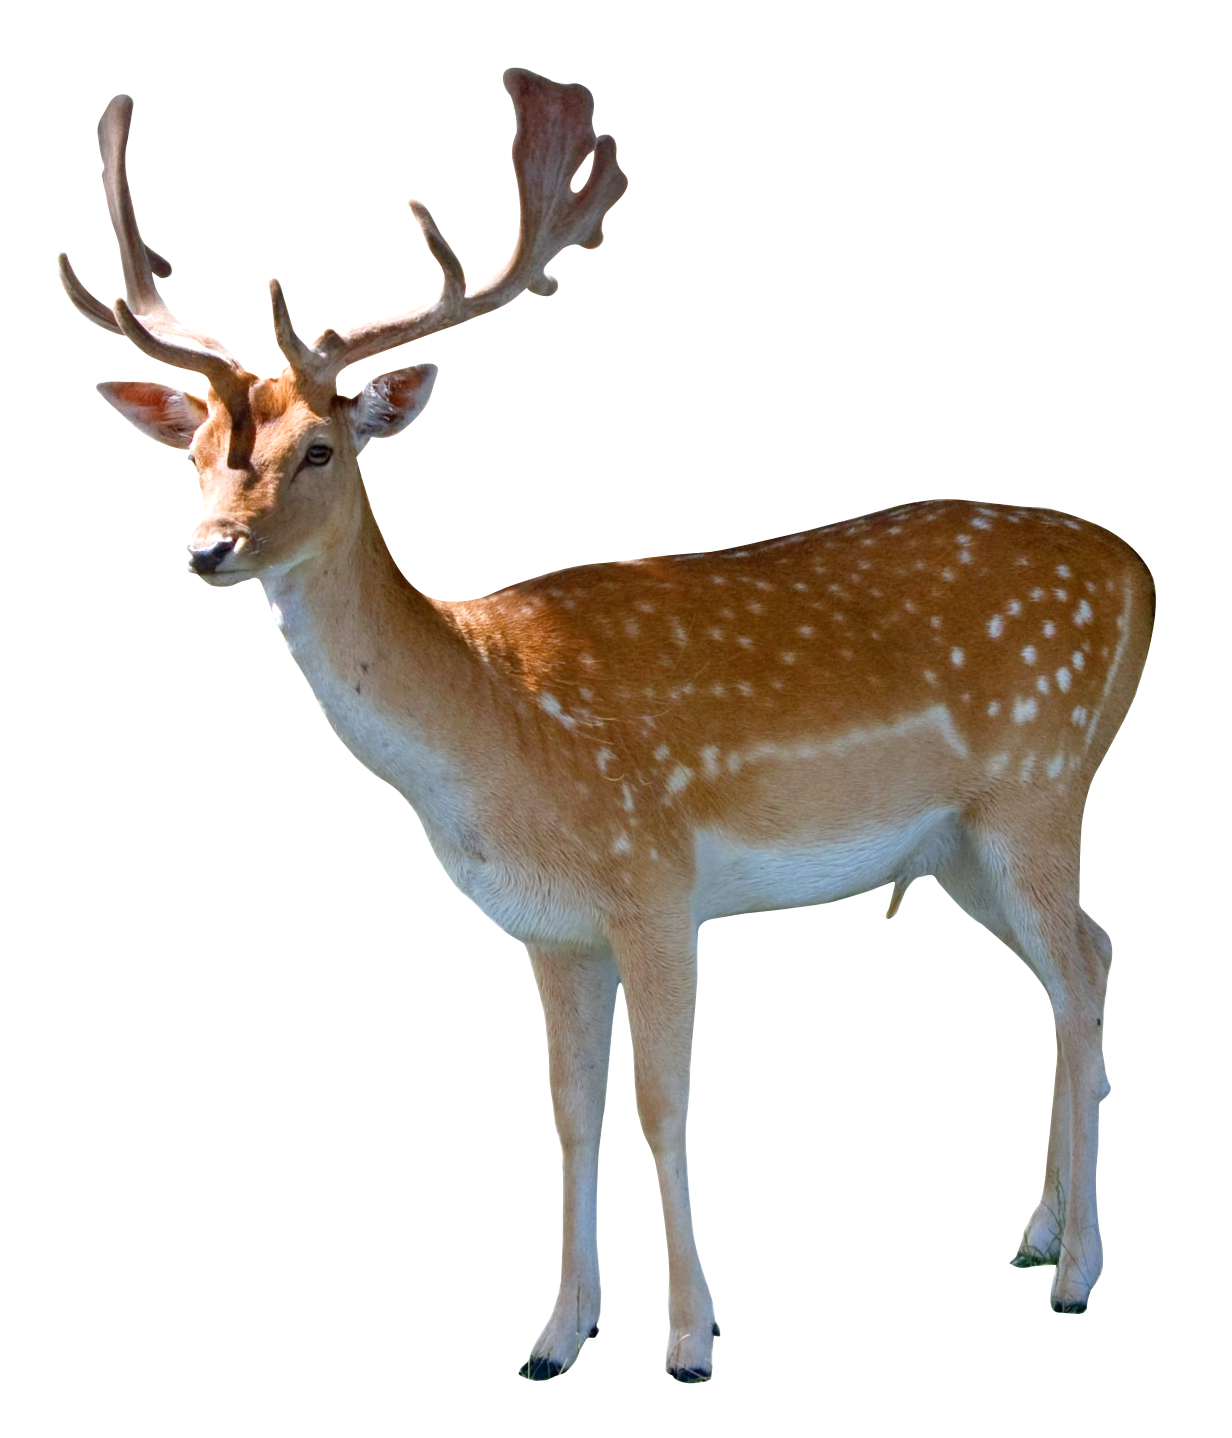 Deer PNG Transparent Image - Deer HD PNG - Deer PNG HD